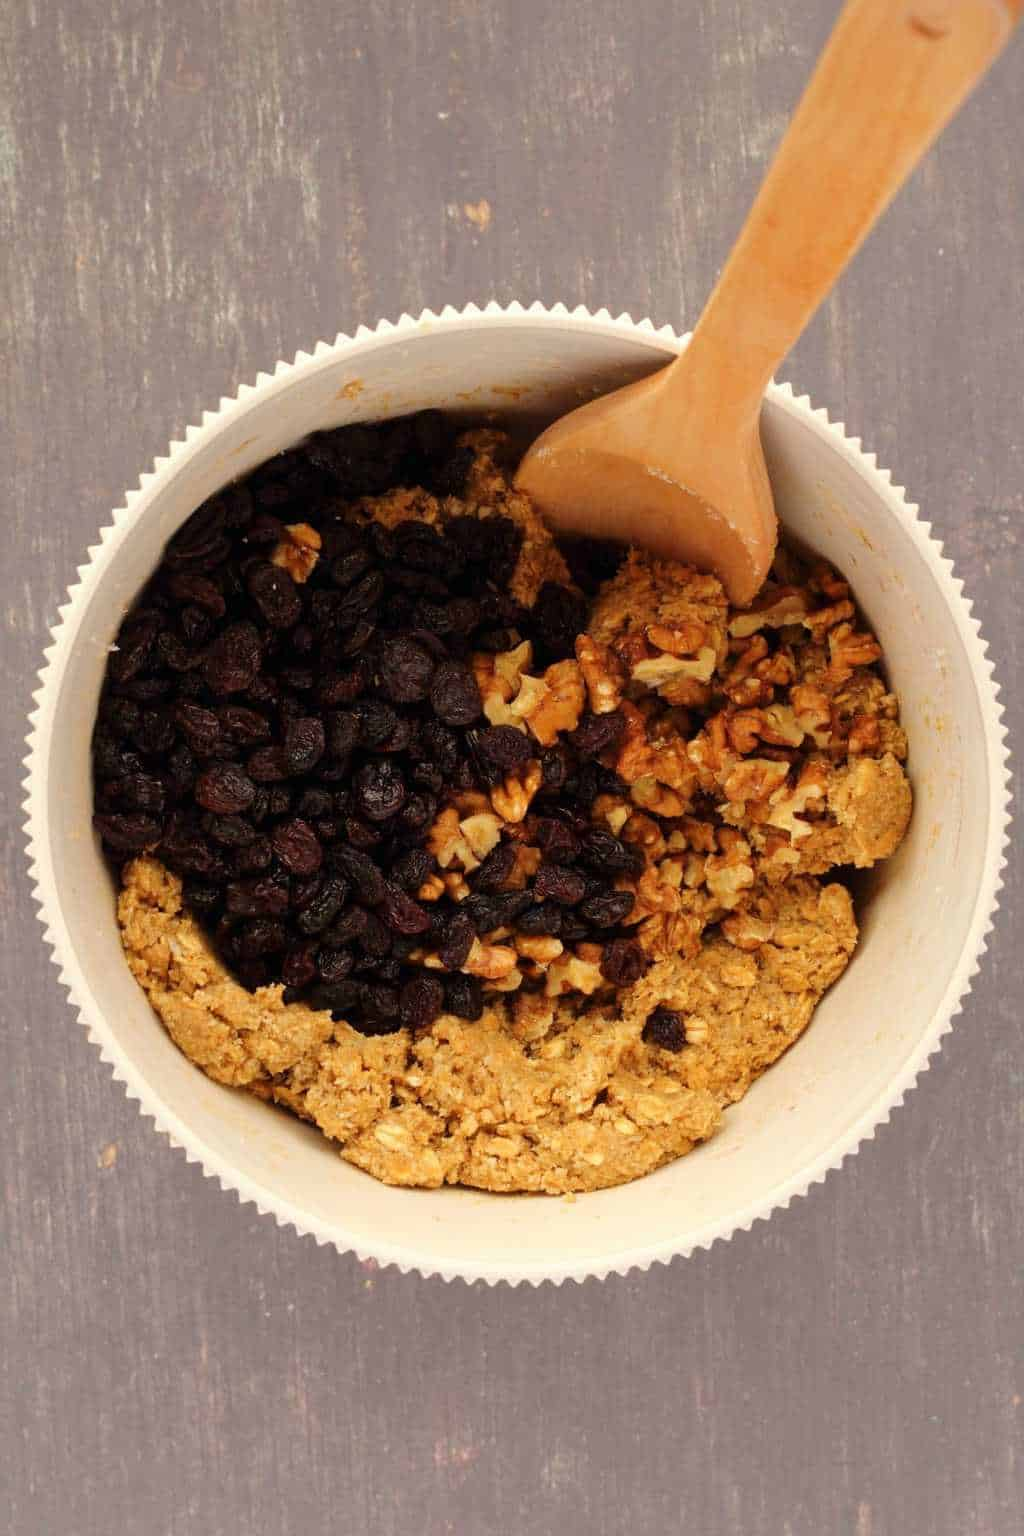 Cookie dough topped with raisins and walnuts in a mixing bowl with a wooden spoon.